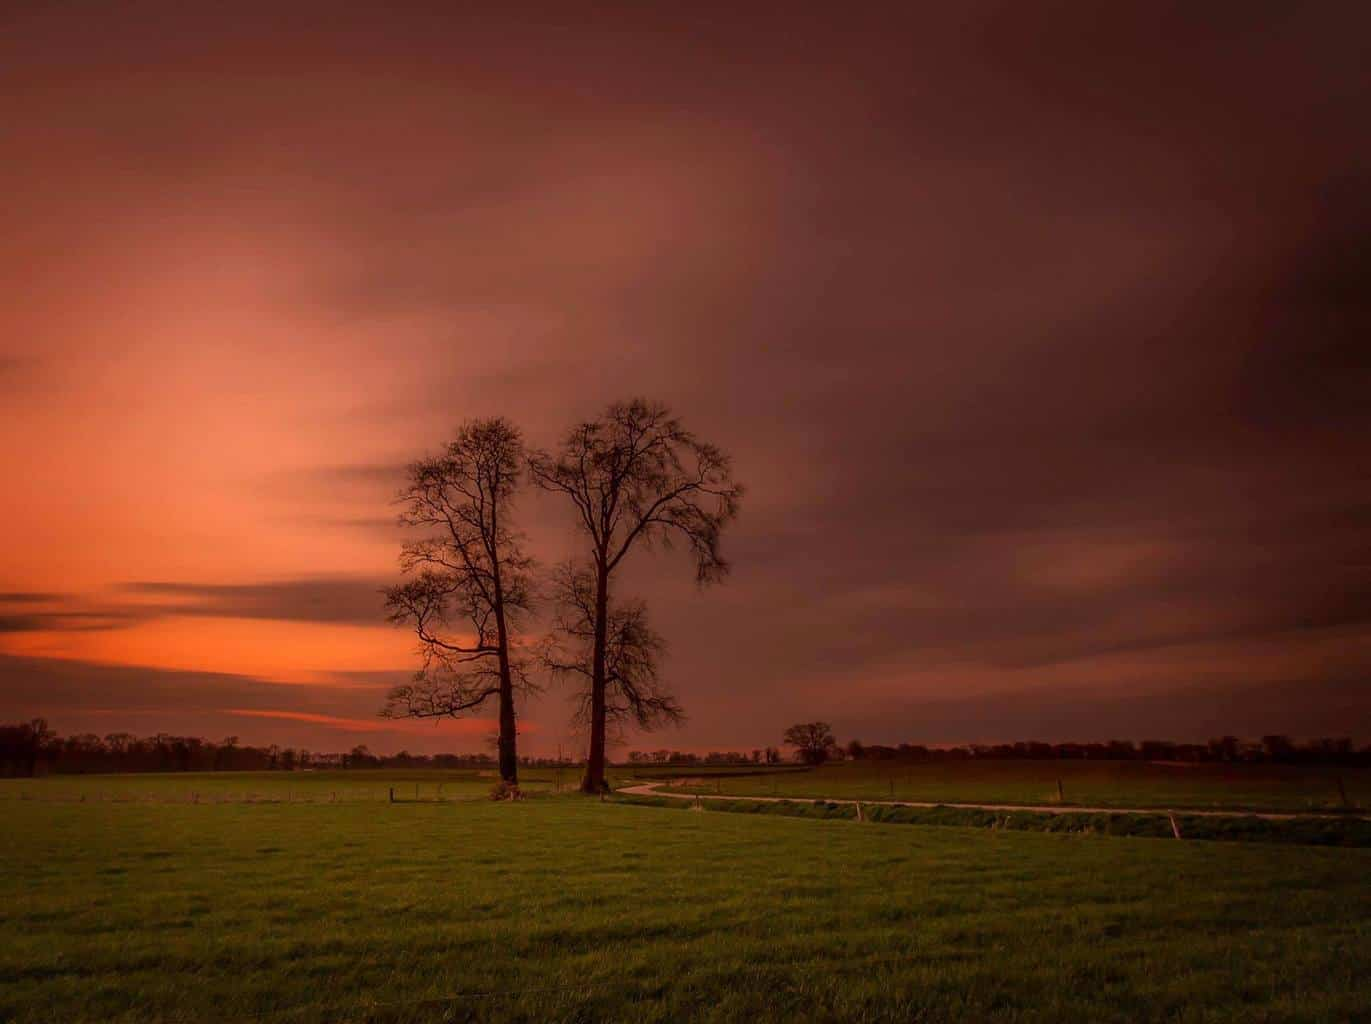 120 seconds of light. (Delden, Netherlands)